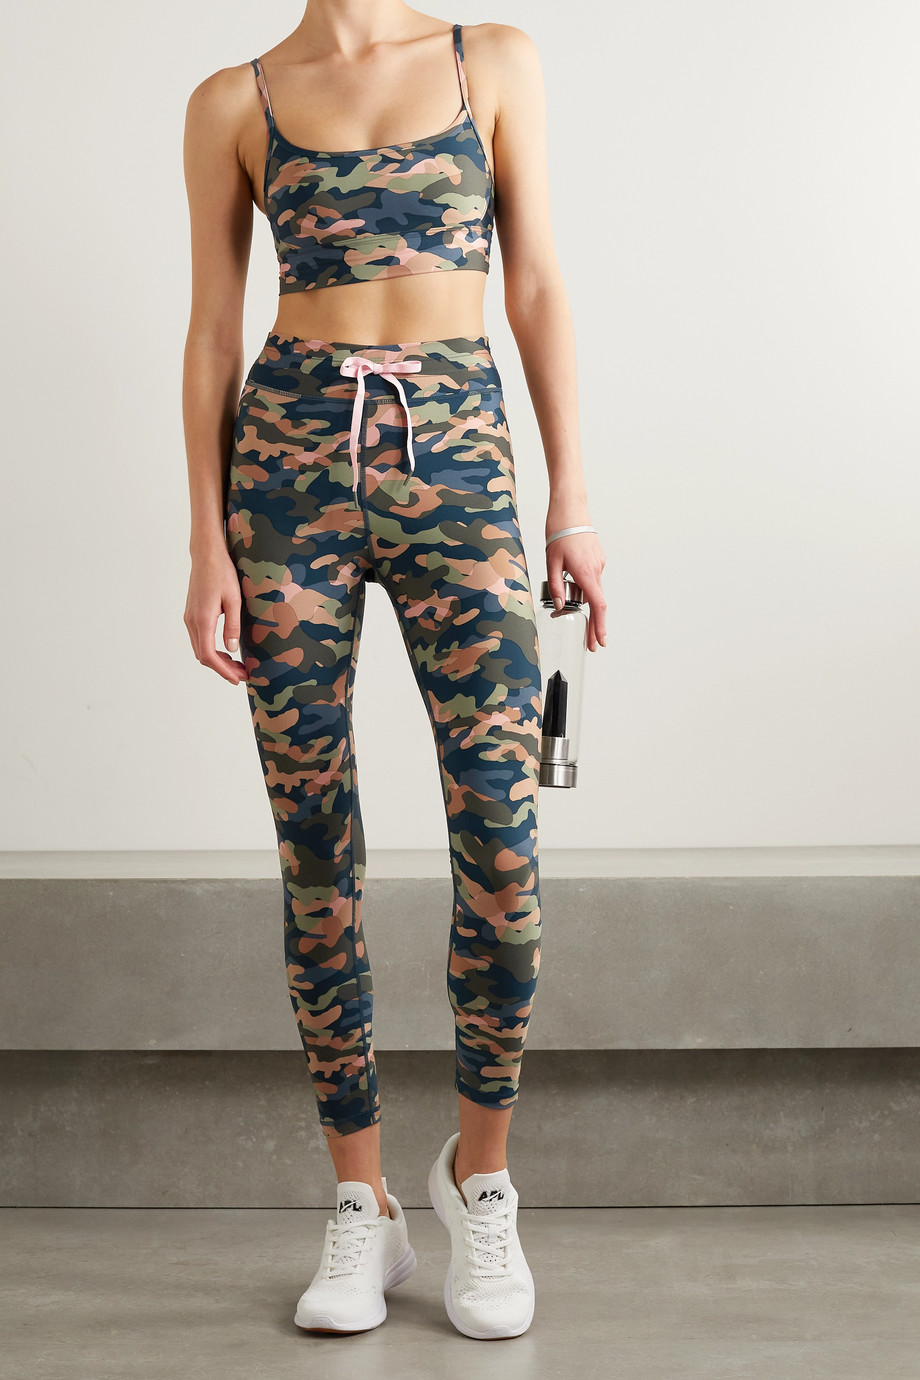 THE UPSIDE Himalaya camouflage-print stretch leggings